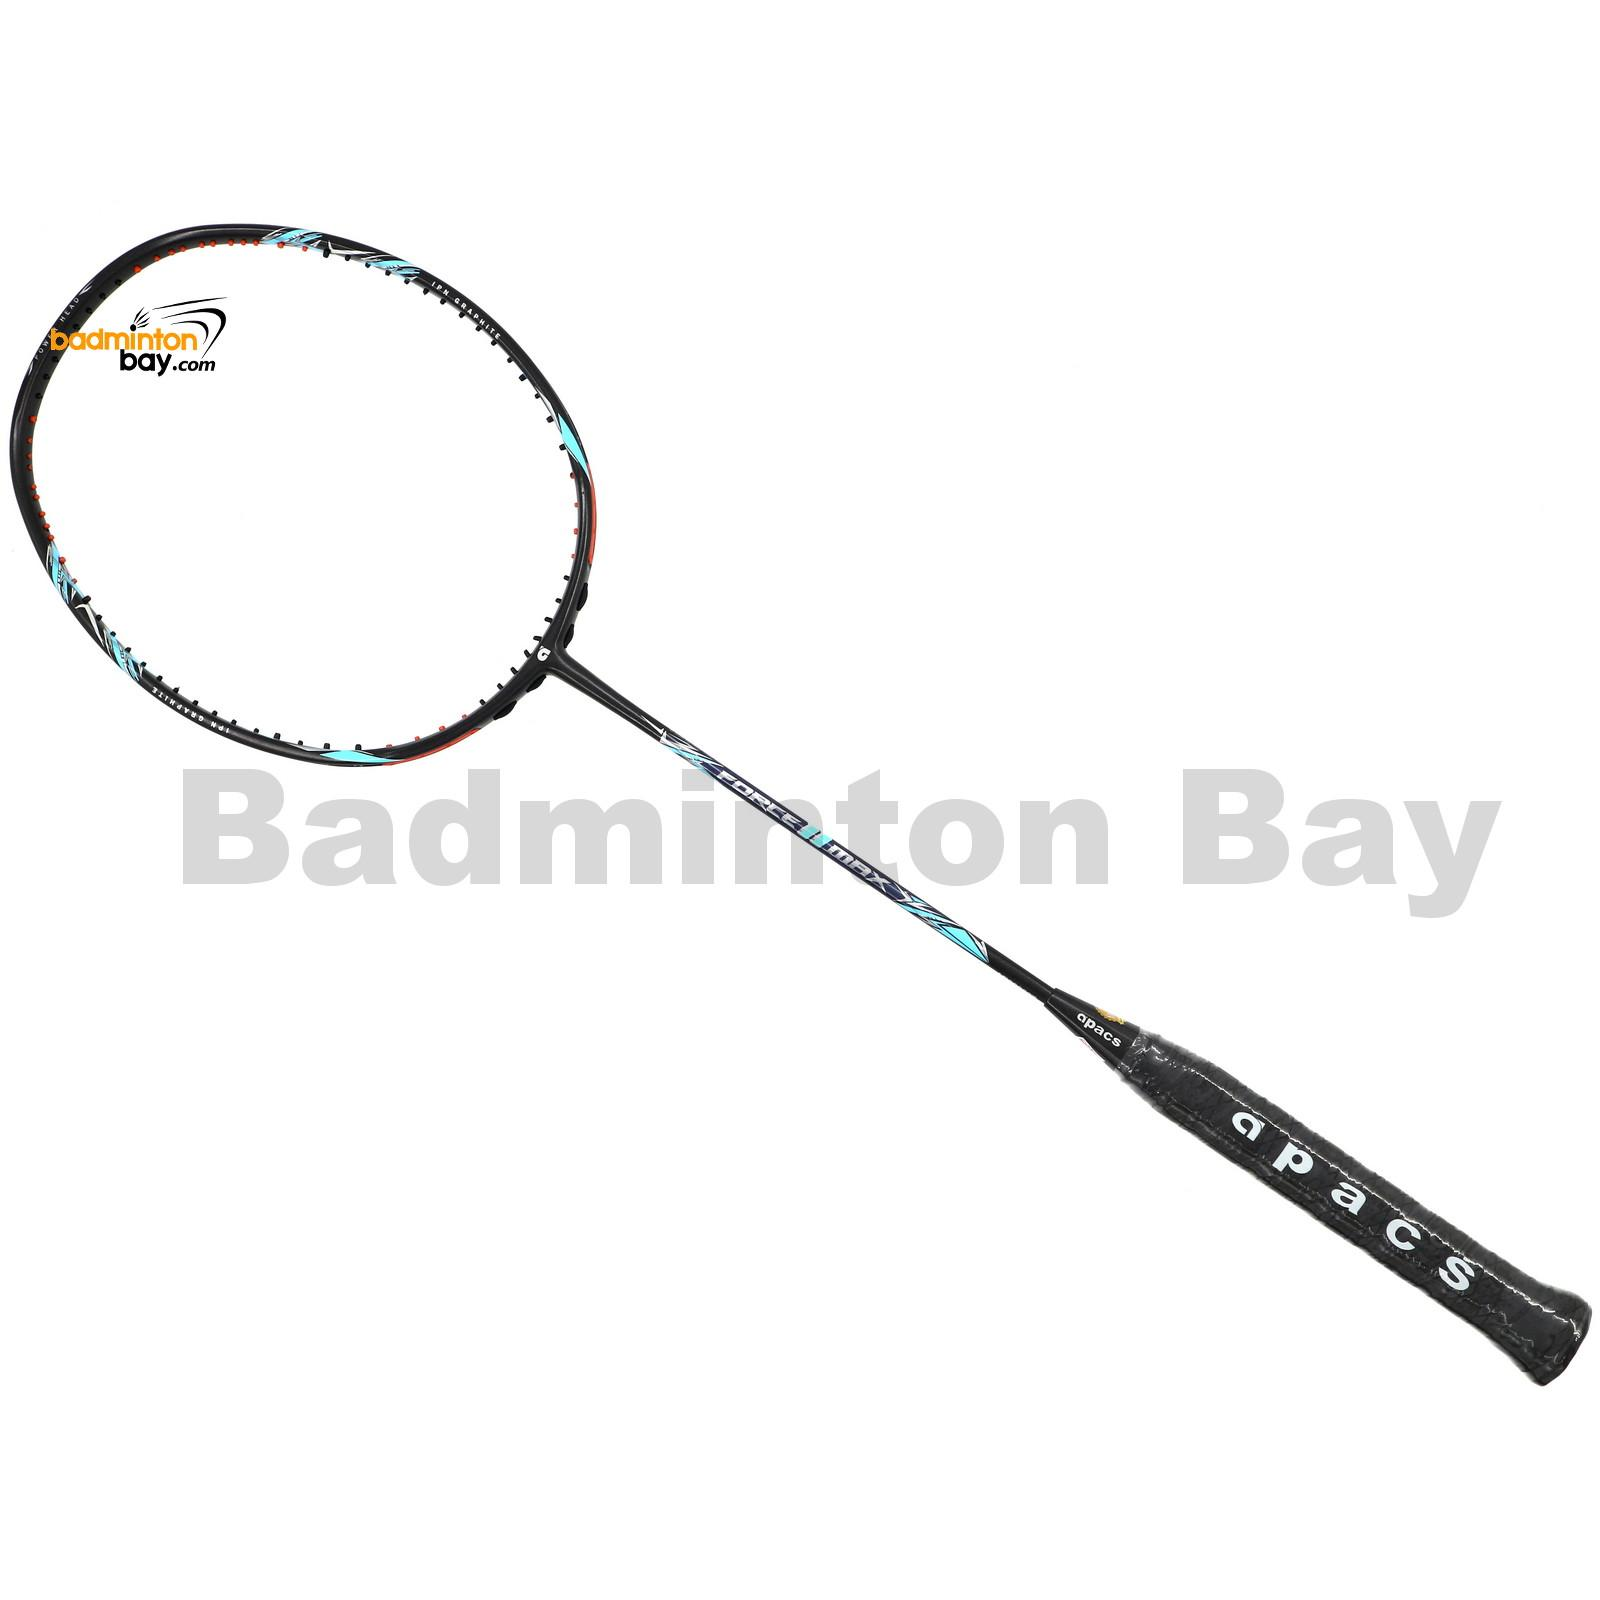 Hot VOLTRIC Z-FORCE II Green Carbon Badminton Racket